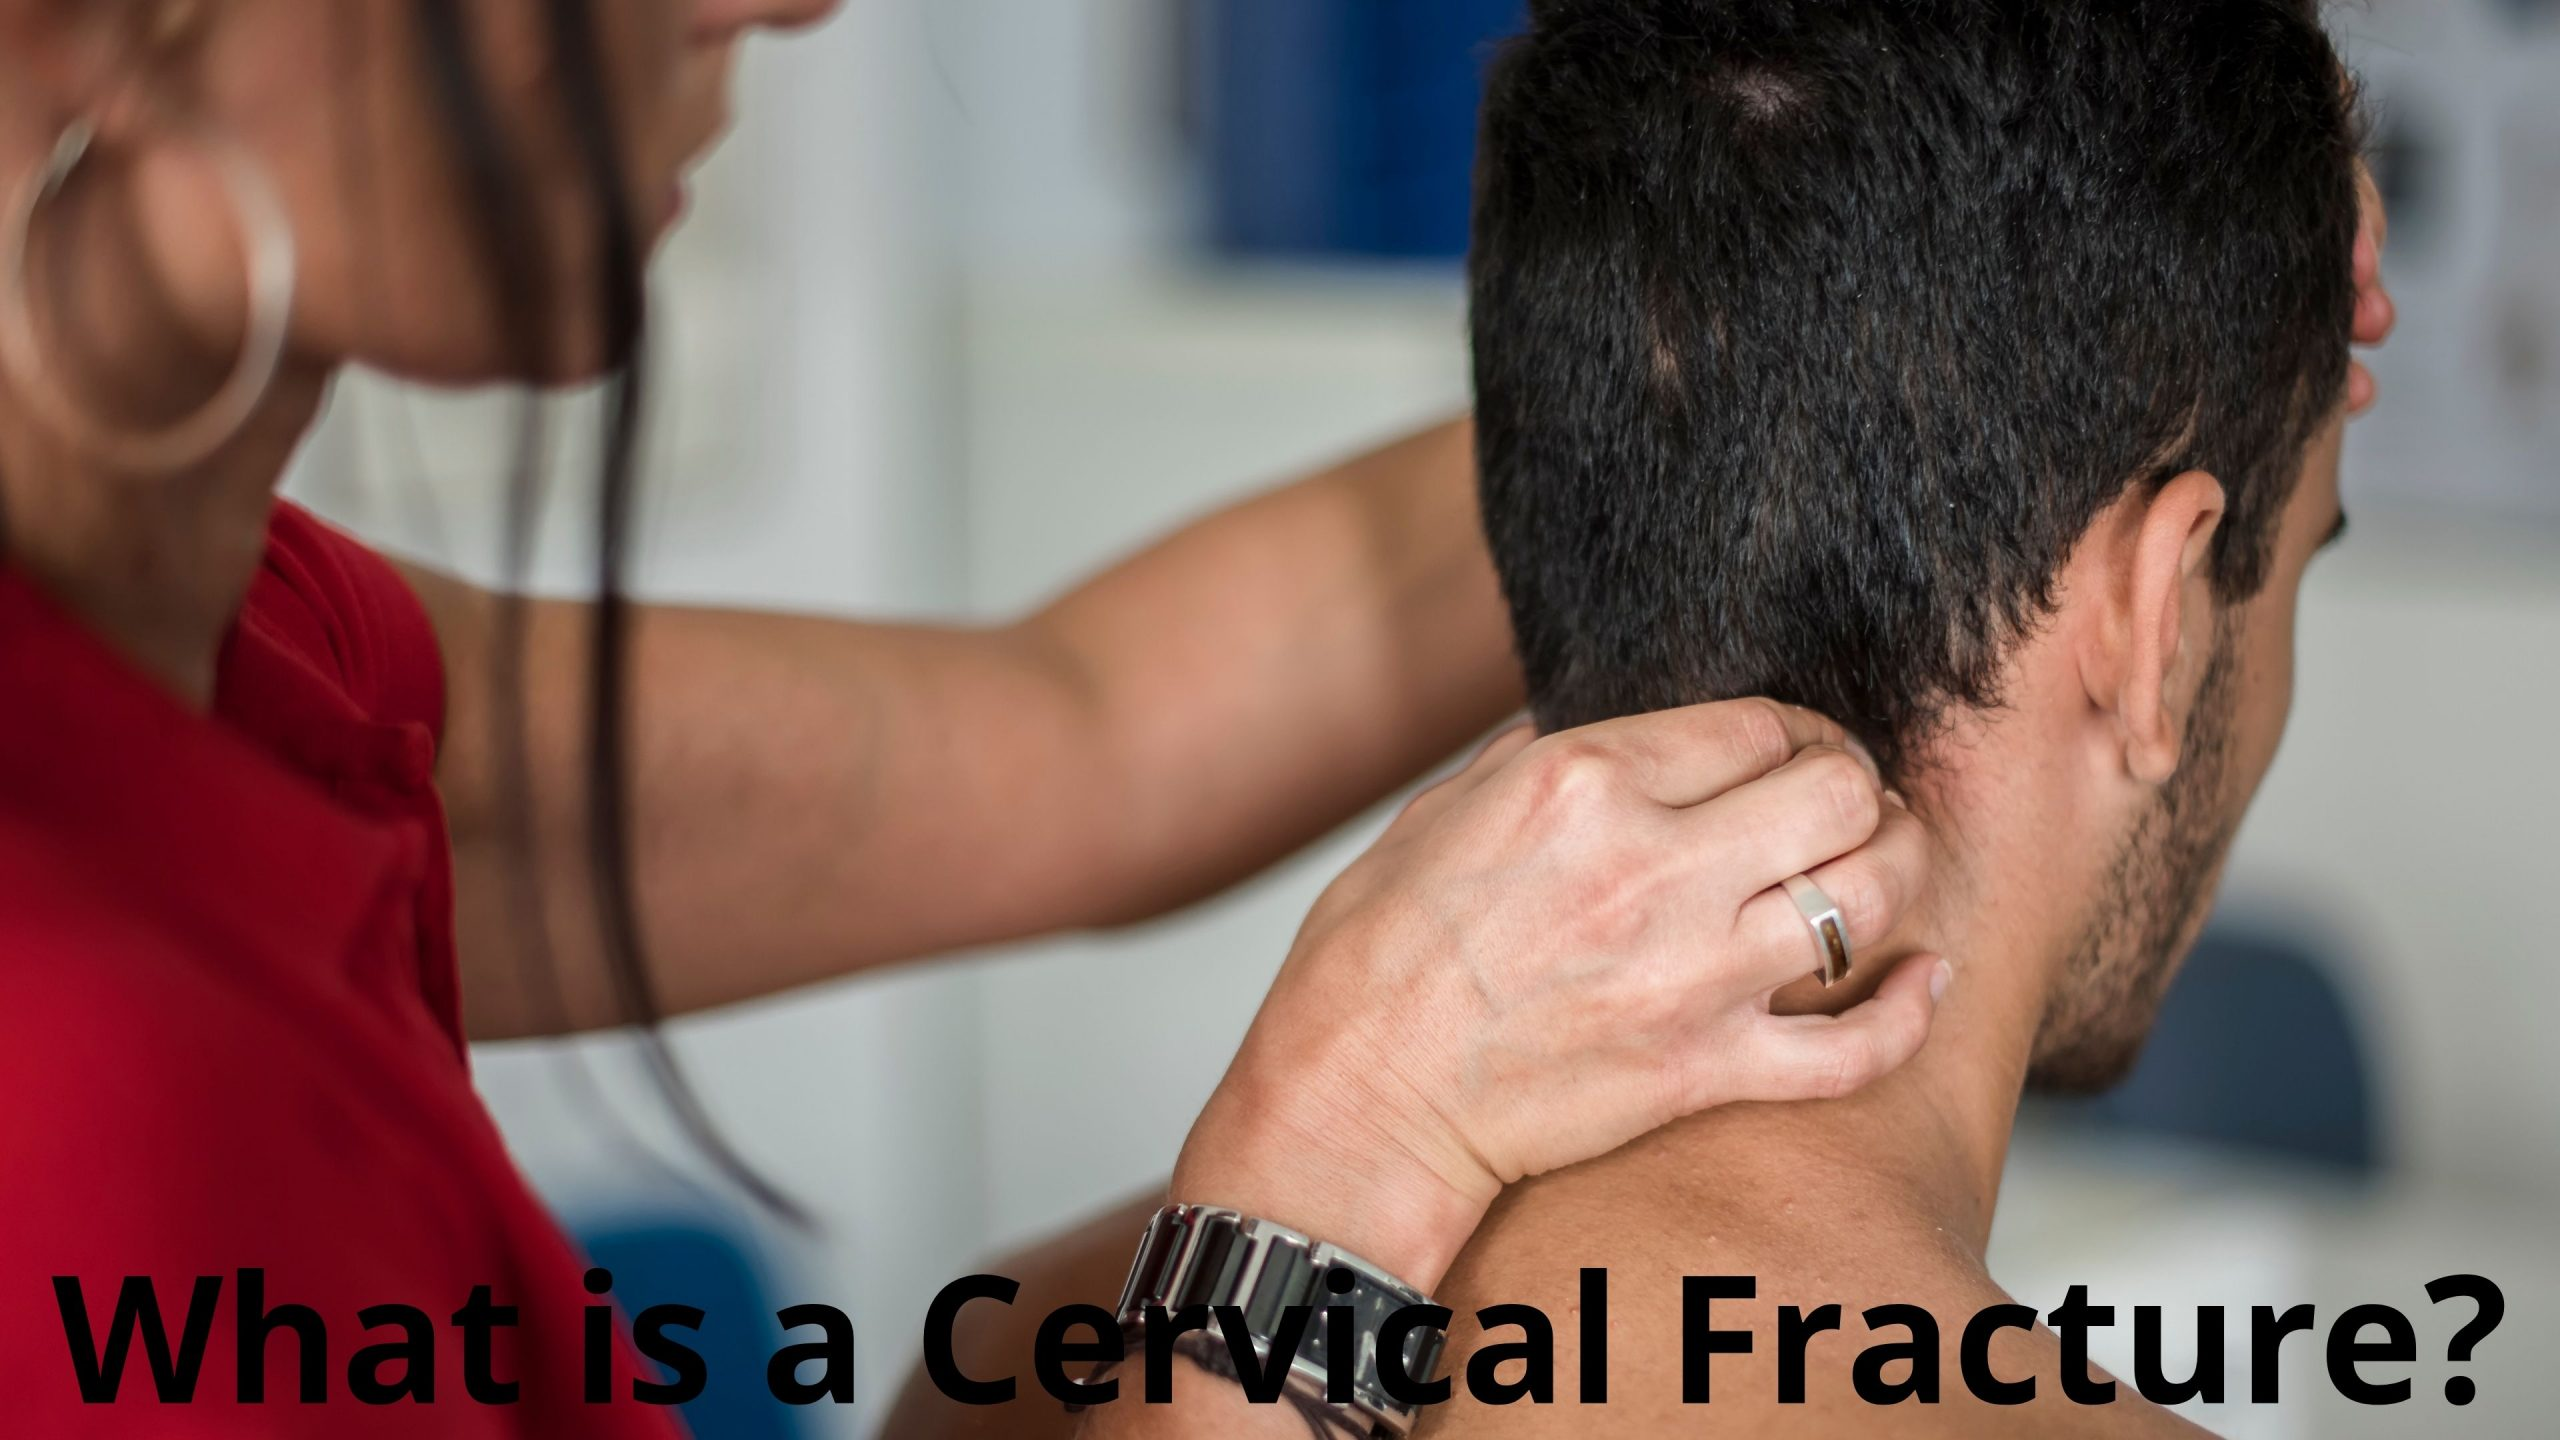 What is a Cervical Fracture